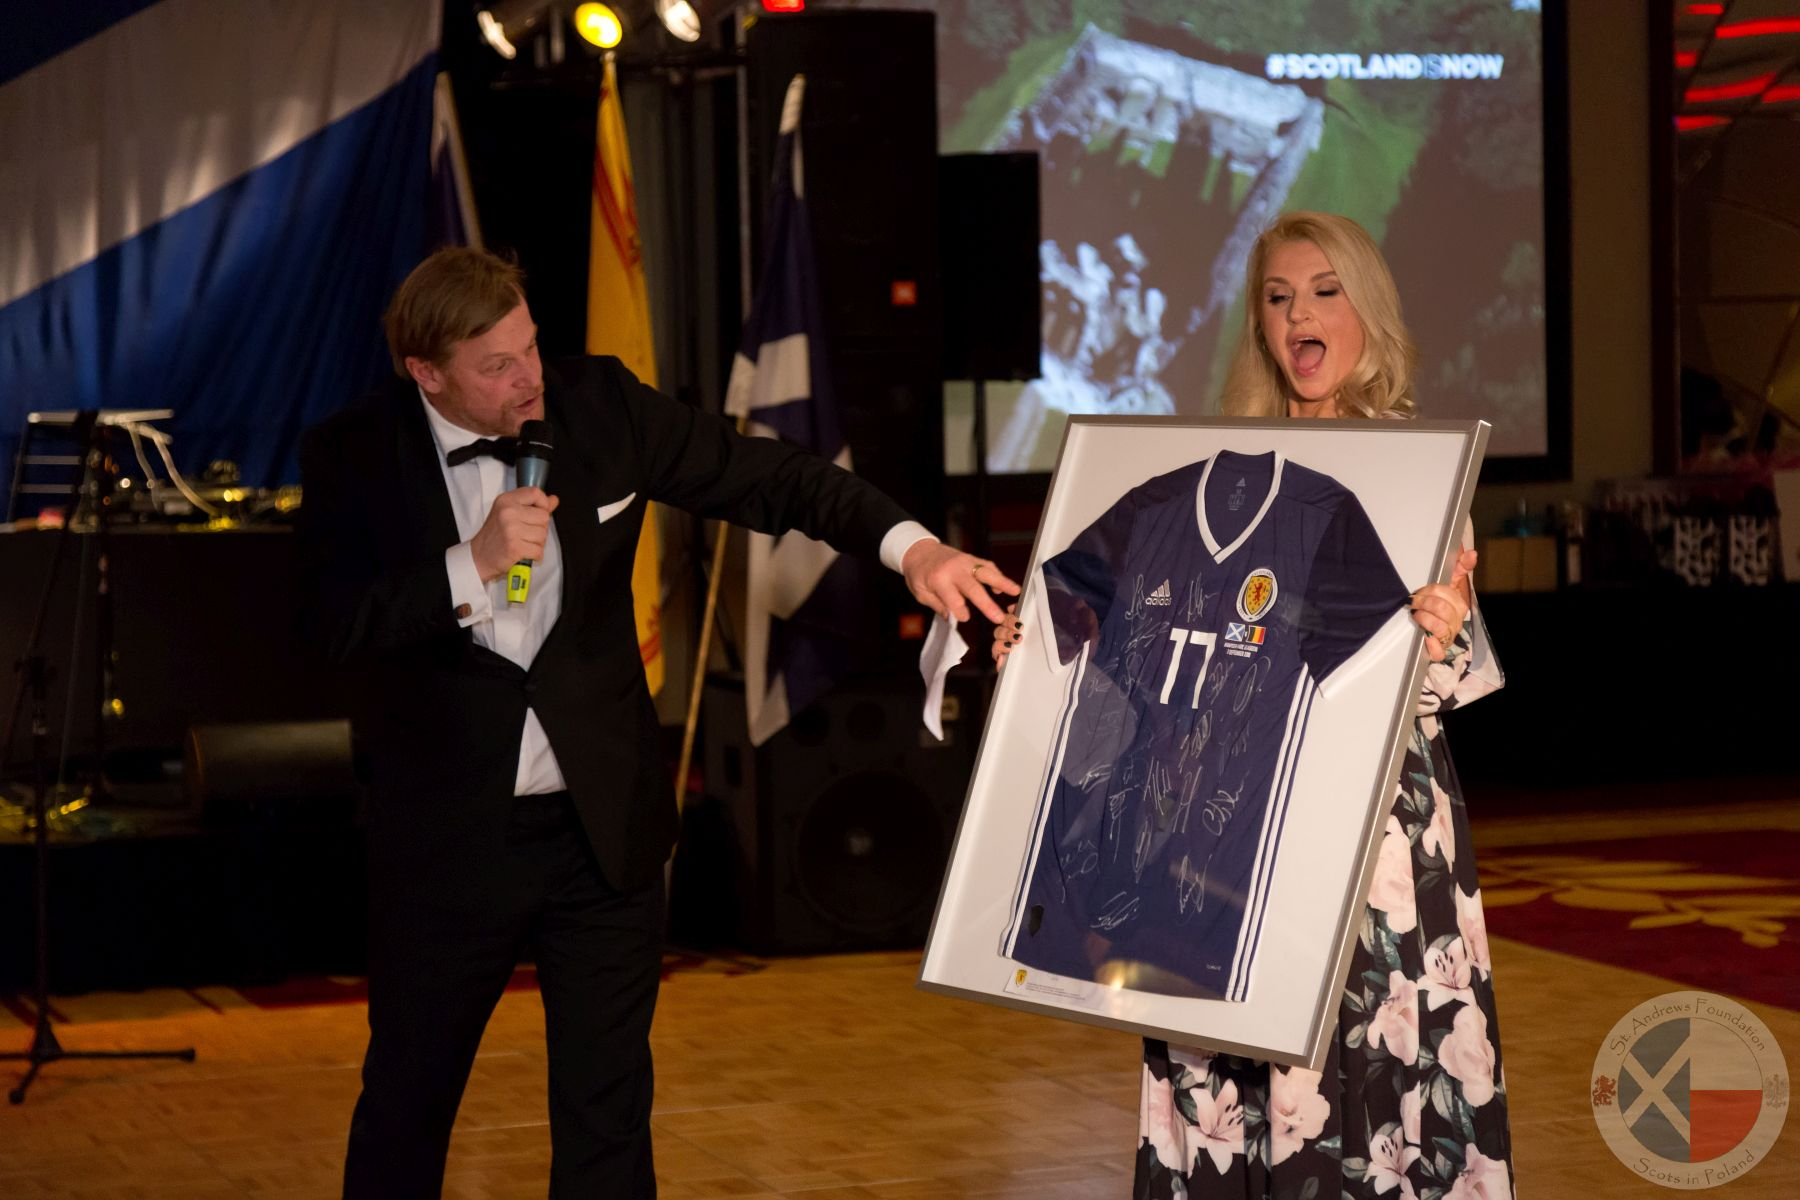 Auctioneer Robert Mielżyński auctions a singed Scotland Football shirt